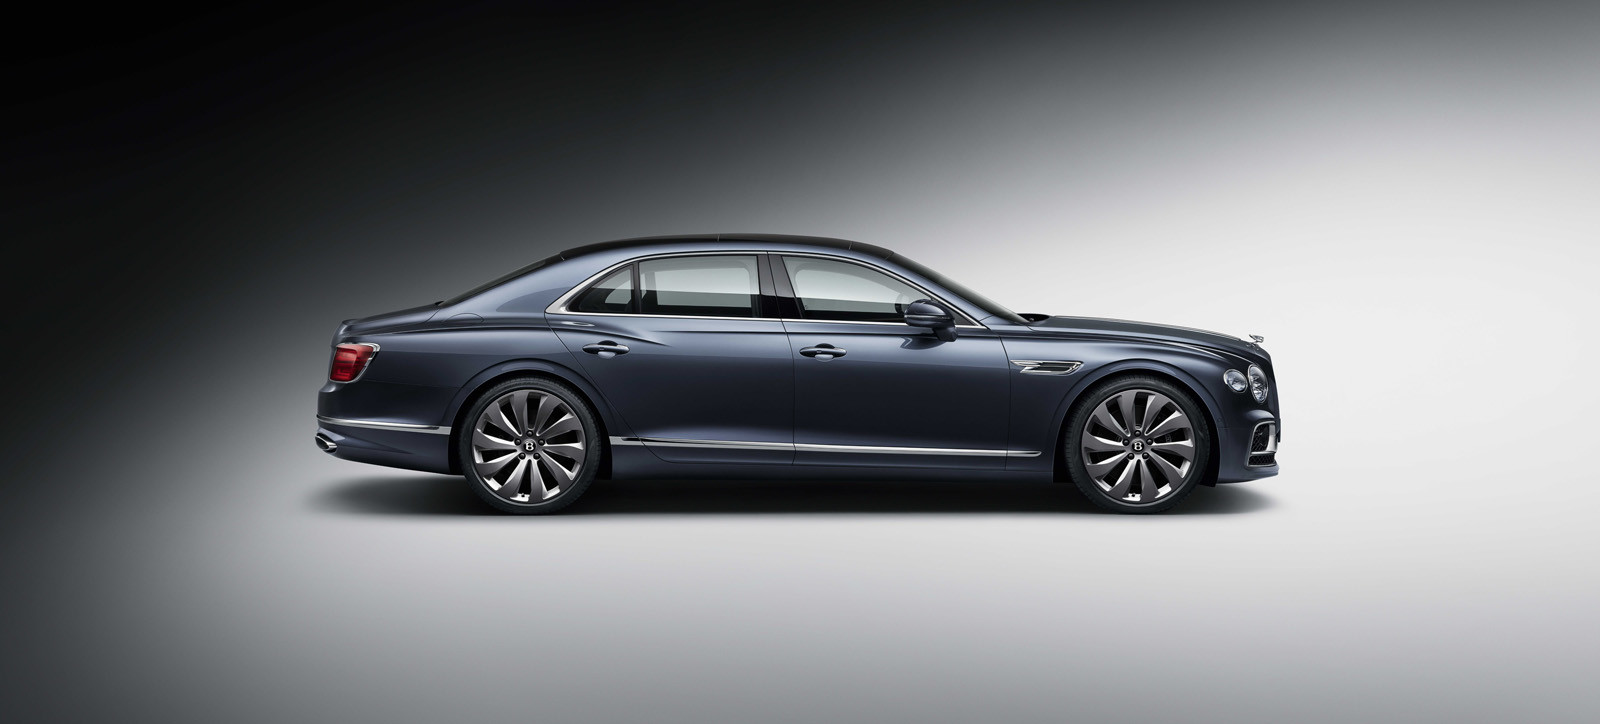 Foto de Bentley Flying Spur 2019 (3/16)